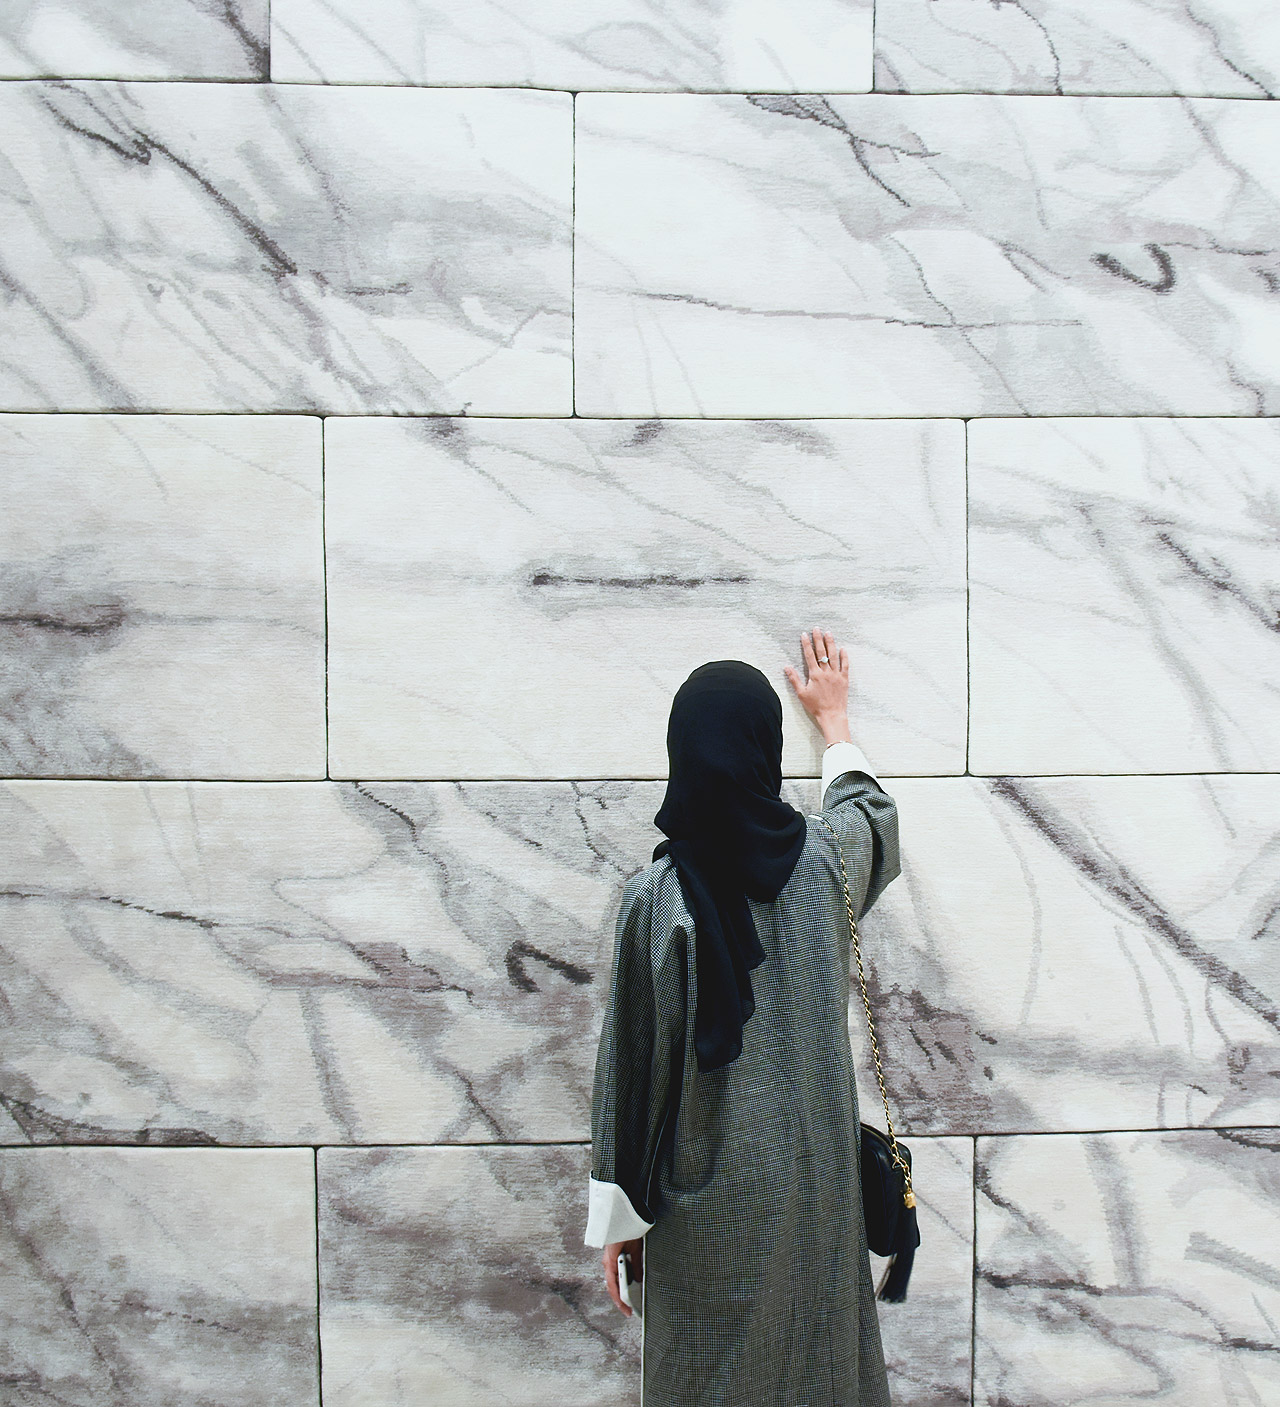 Dubai-based designer Aljoud Lootah interacts with the softest marble tiles in the world from the Floor to Heaven series by Michaela Schleypen at Samovar Carpets during Downtown Design Dubai 2016.